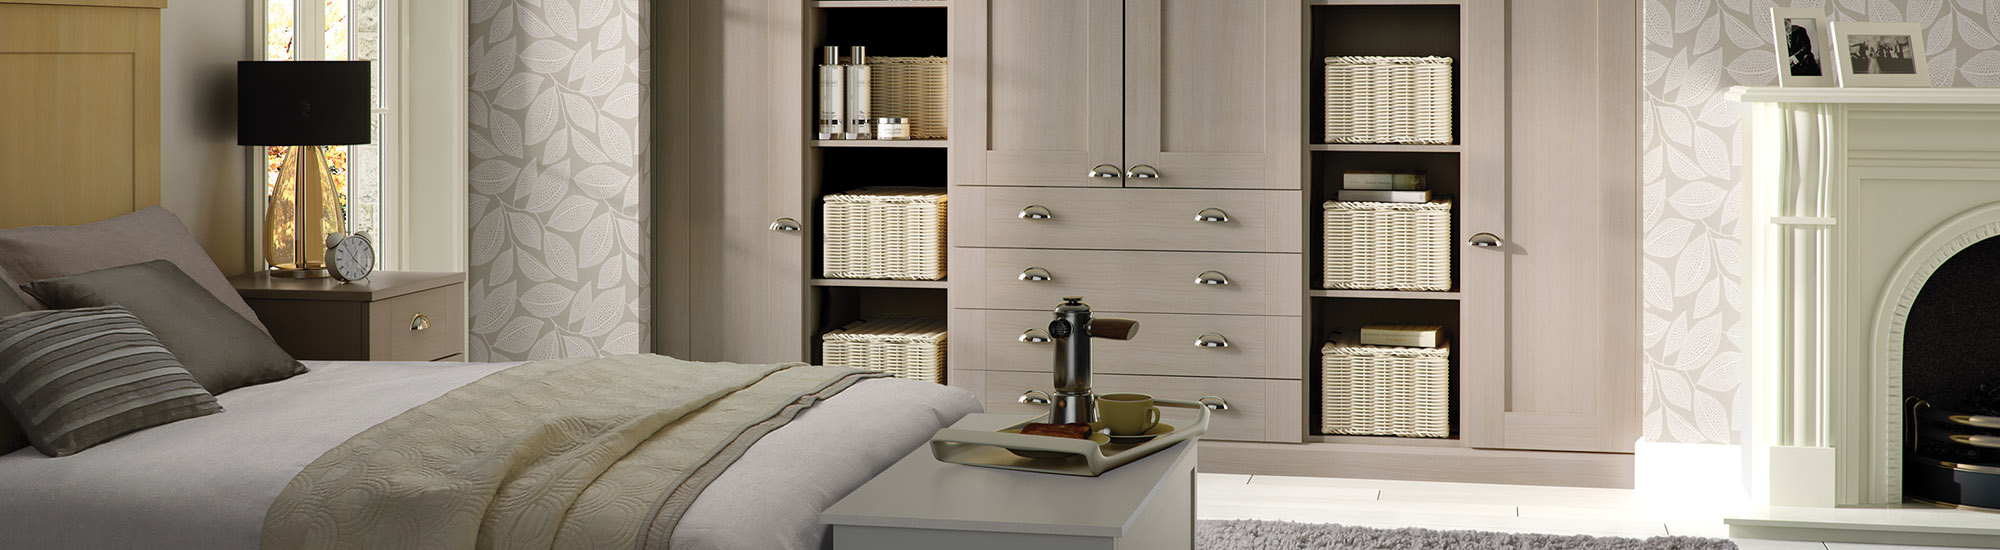 Bedroom Designers Exeter Kitchenworld